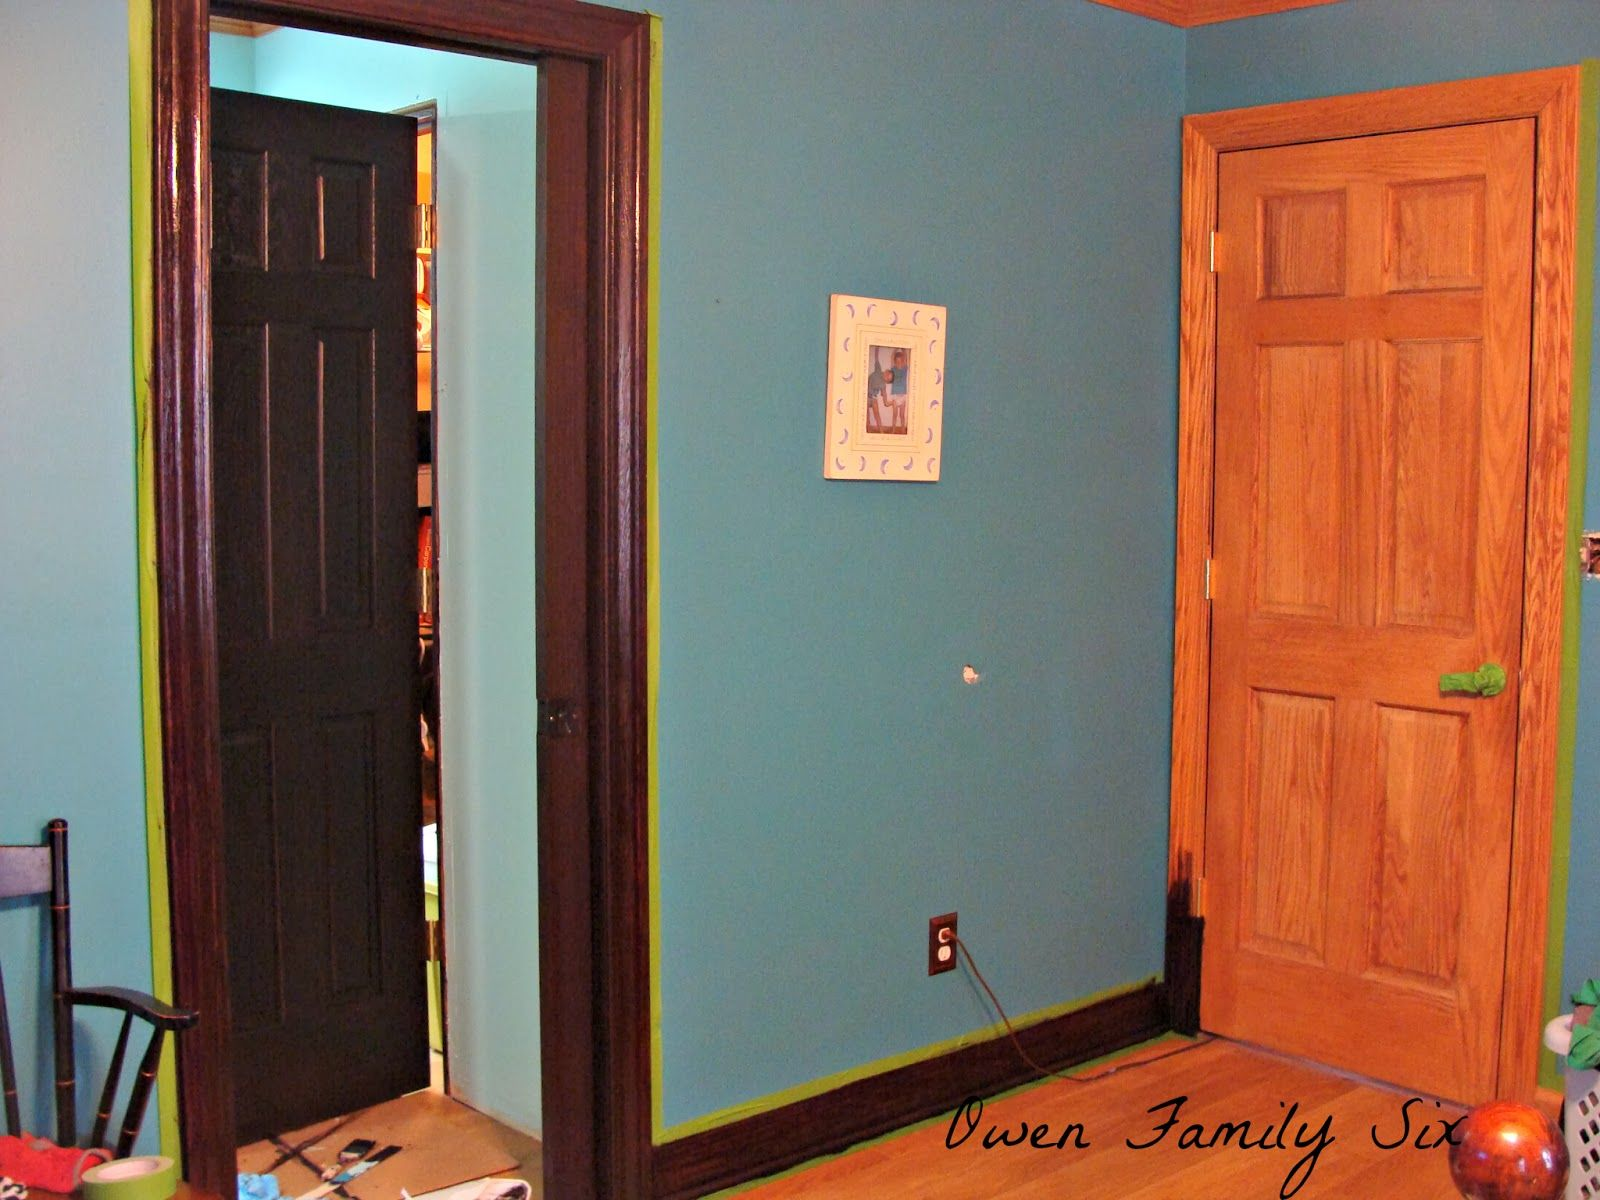 Last week I worked on finishing up the trim in our bedroom. I still need to finish the window sashes though. Here it is before: Her...